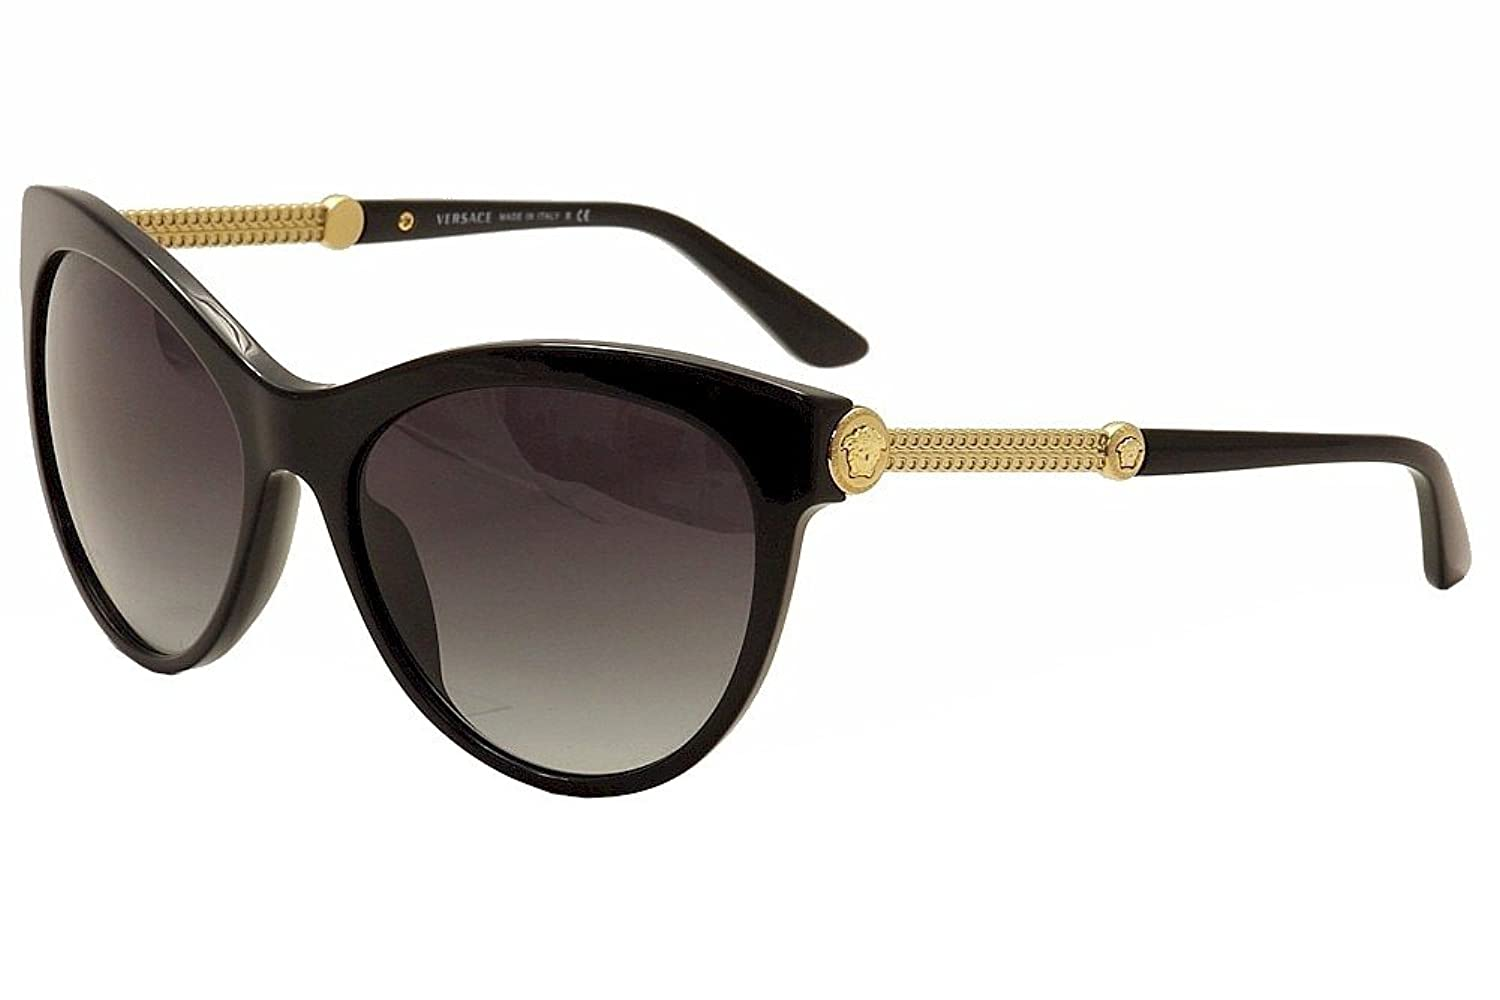 Womens Sunglasses (VE4292) Acetate